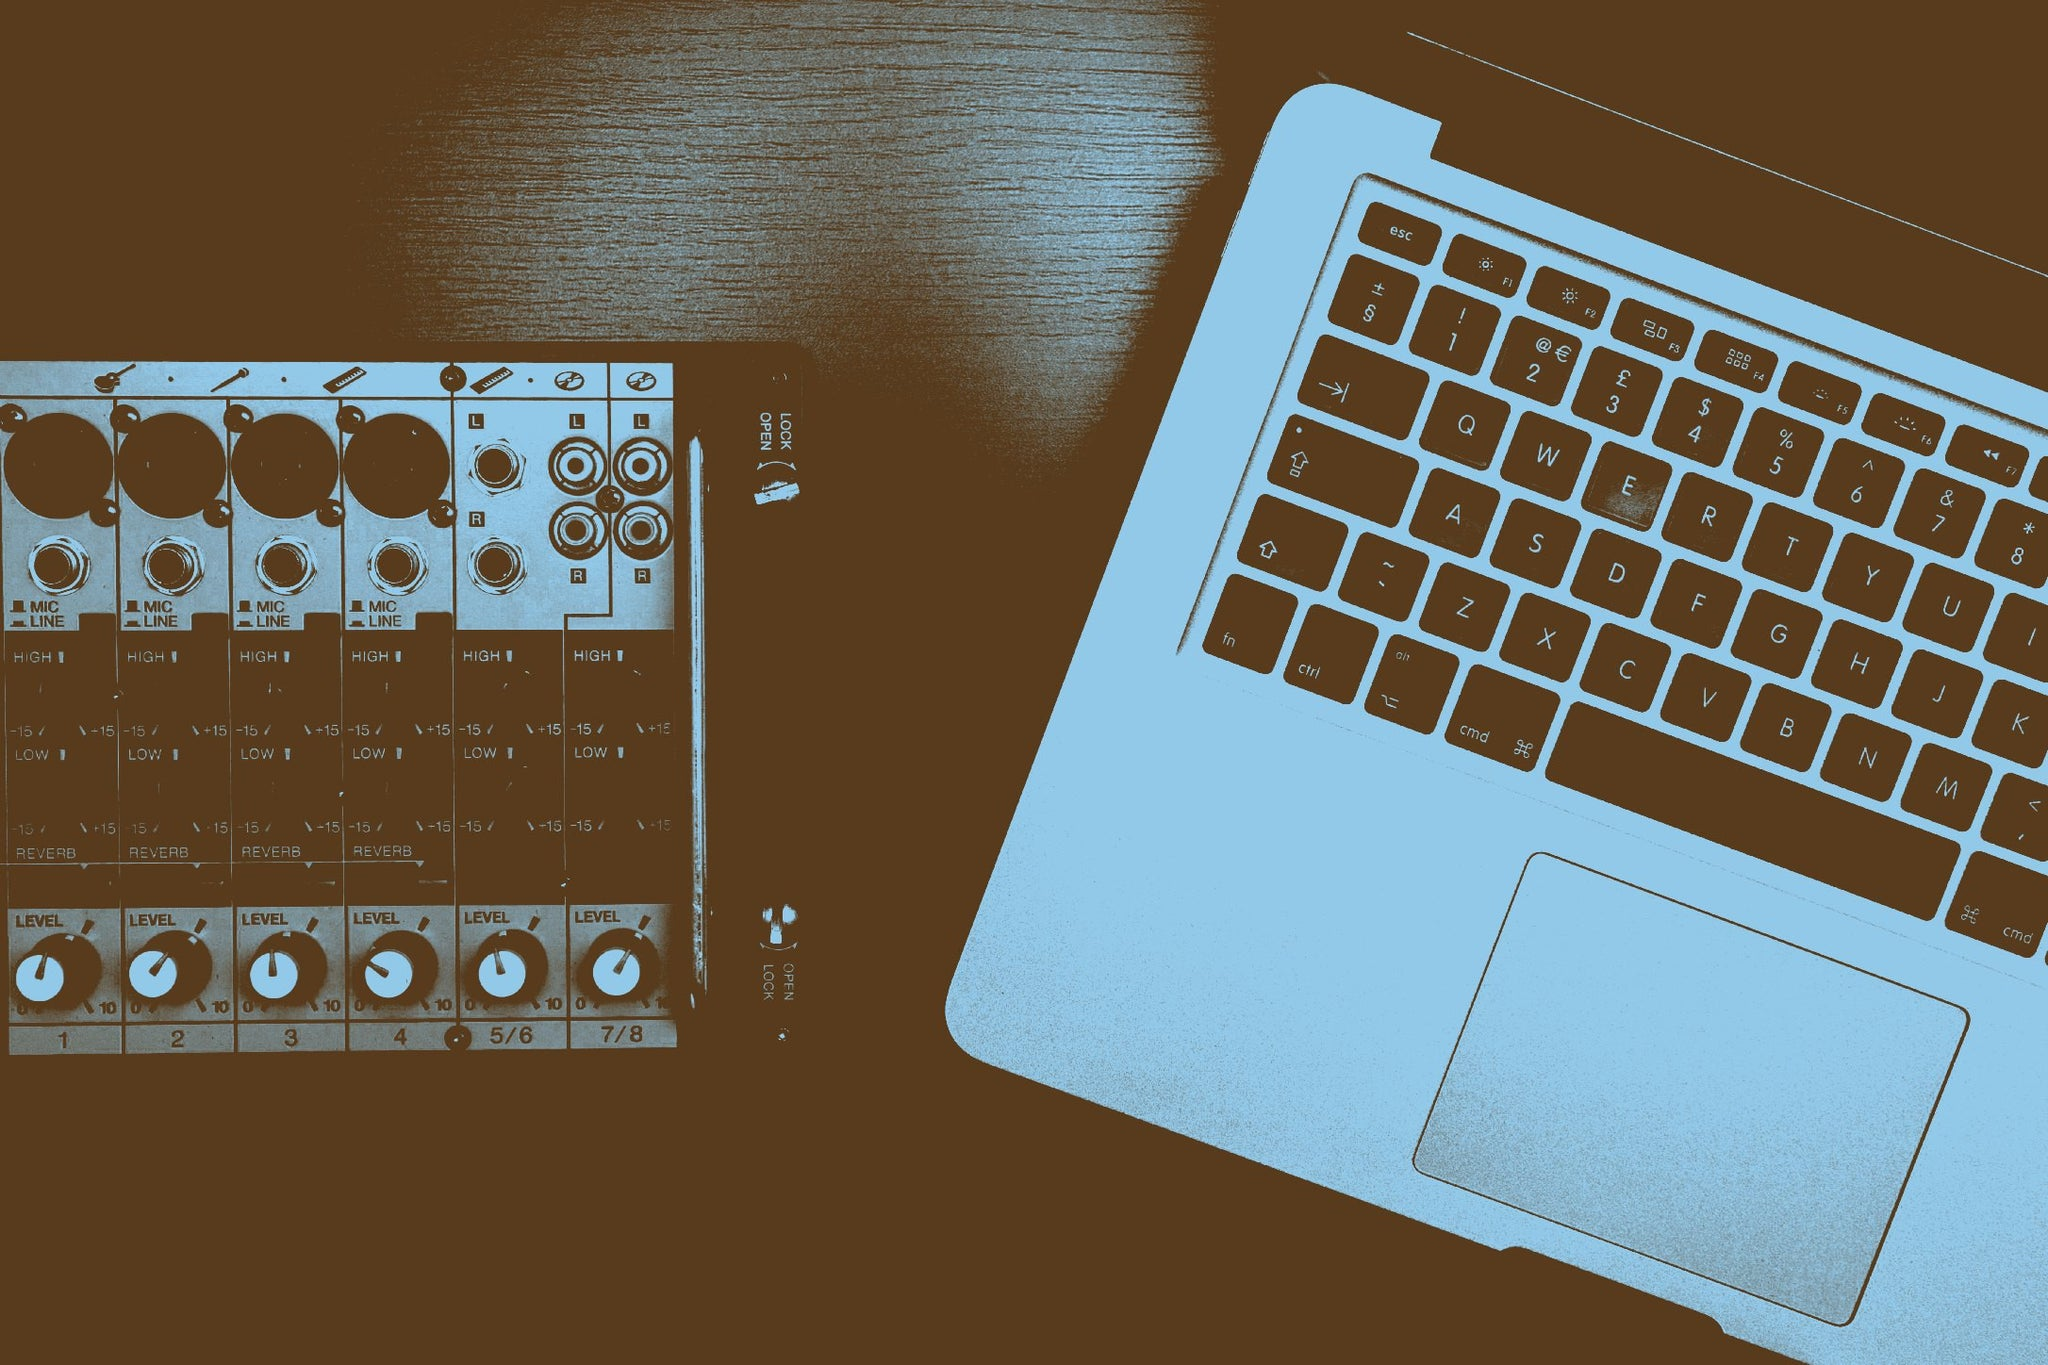 How To Quickly Create A Worship Pads Setlist on your iPhone or iPad